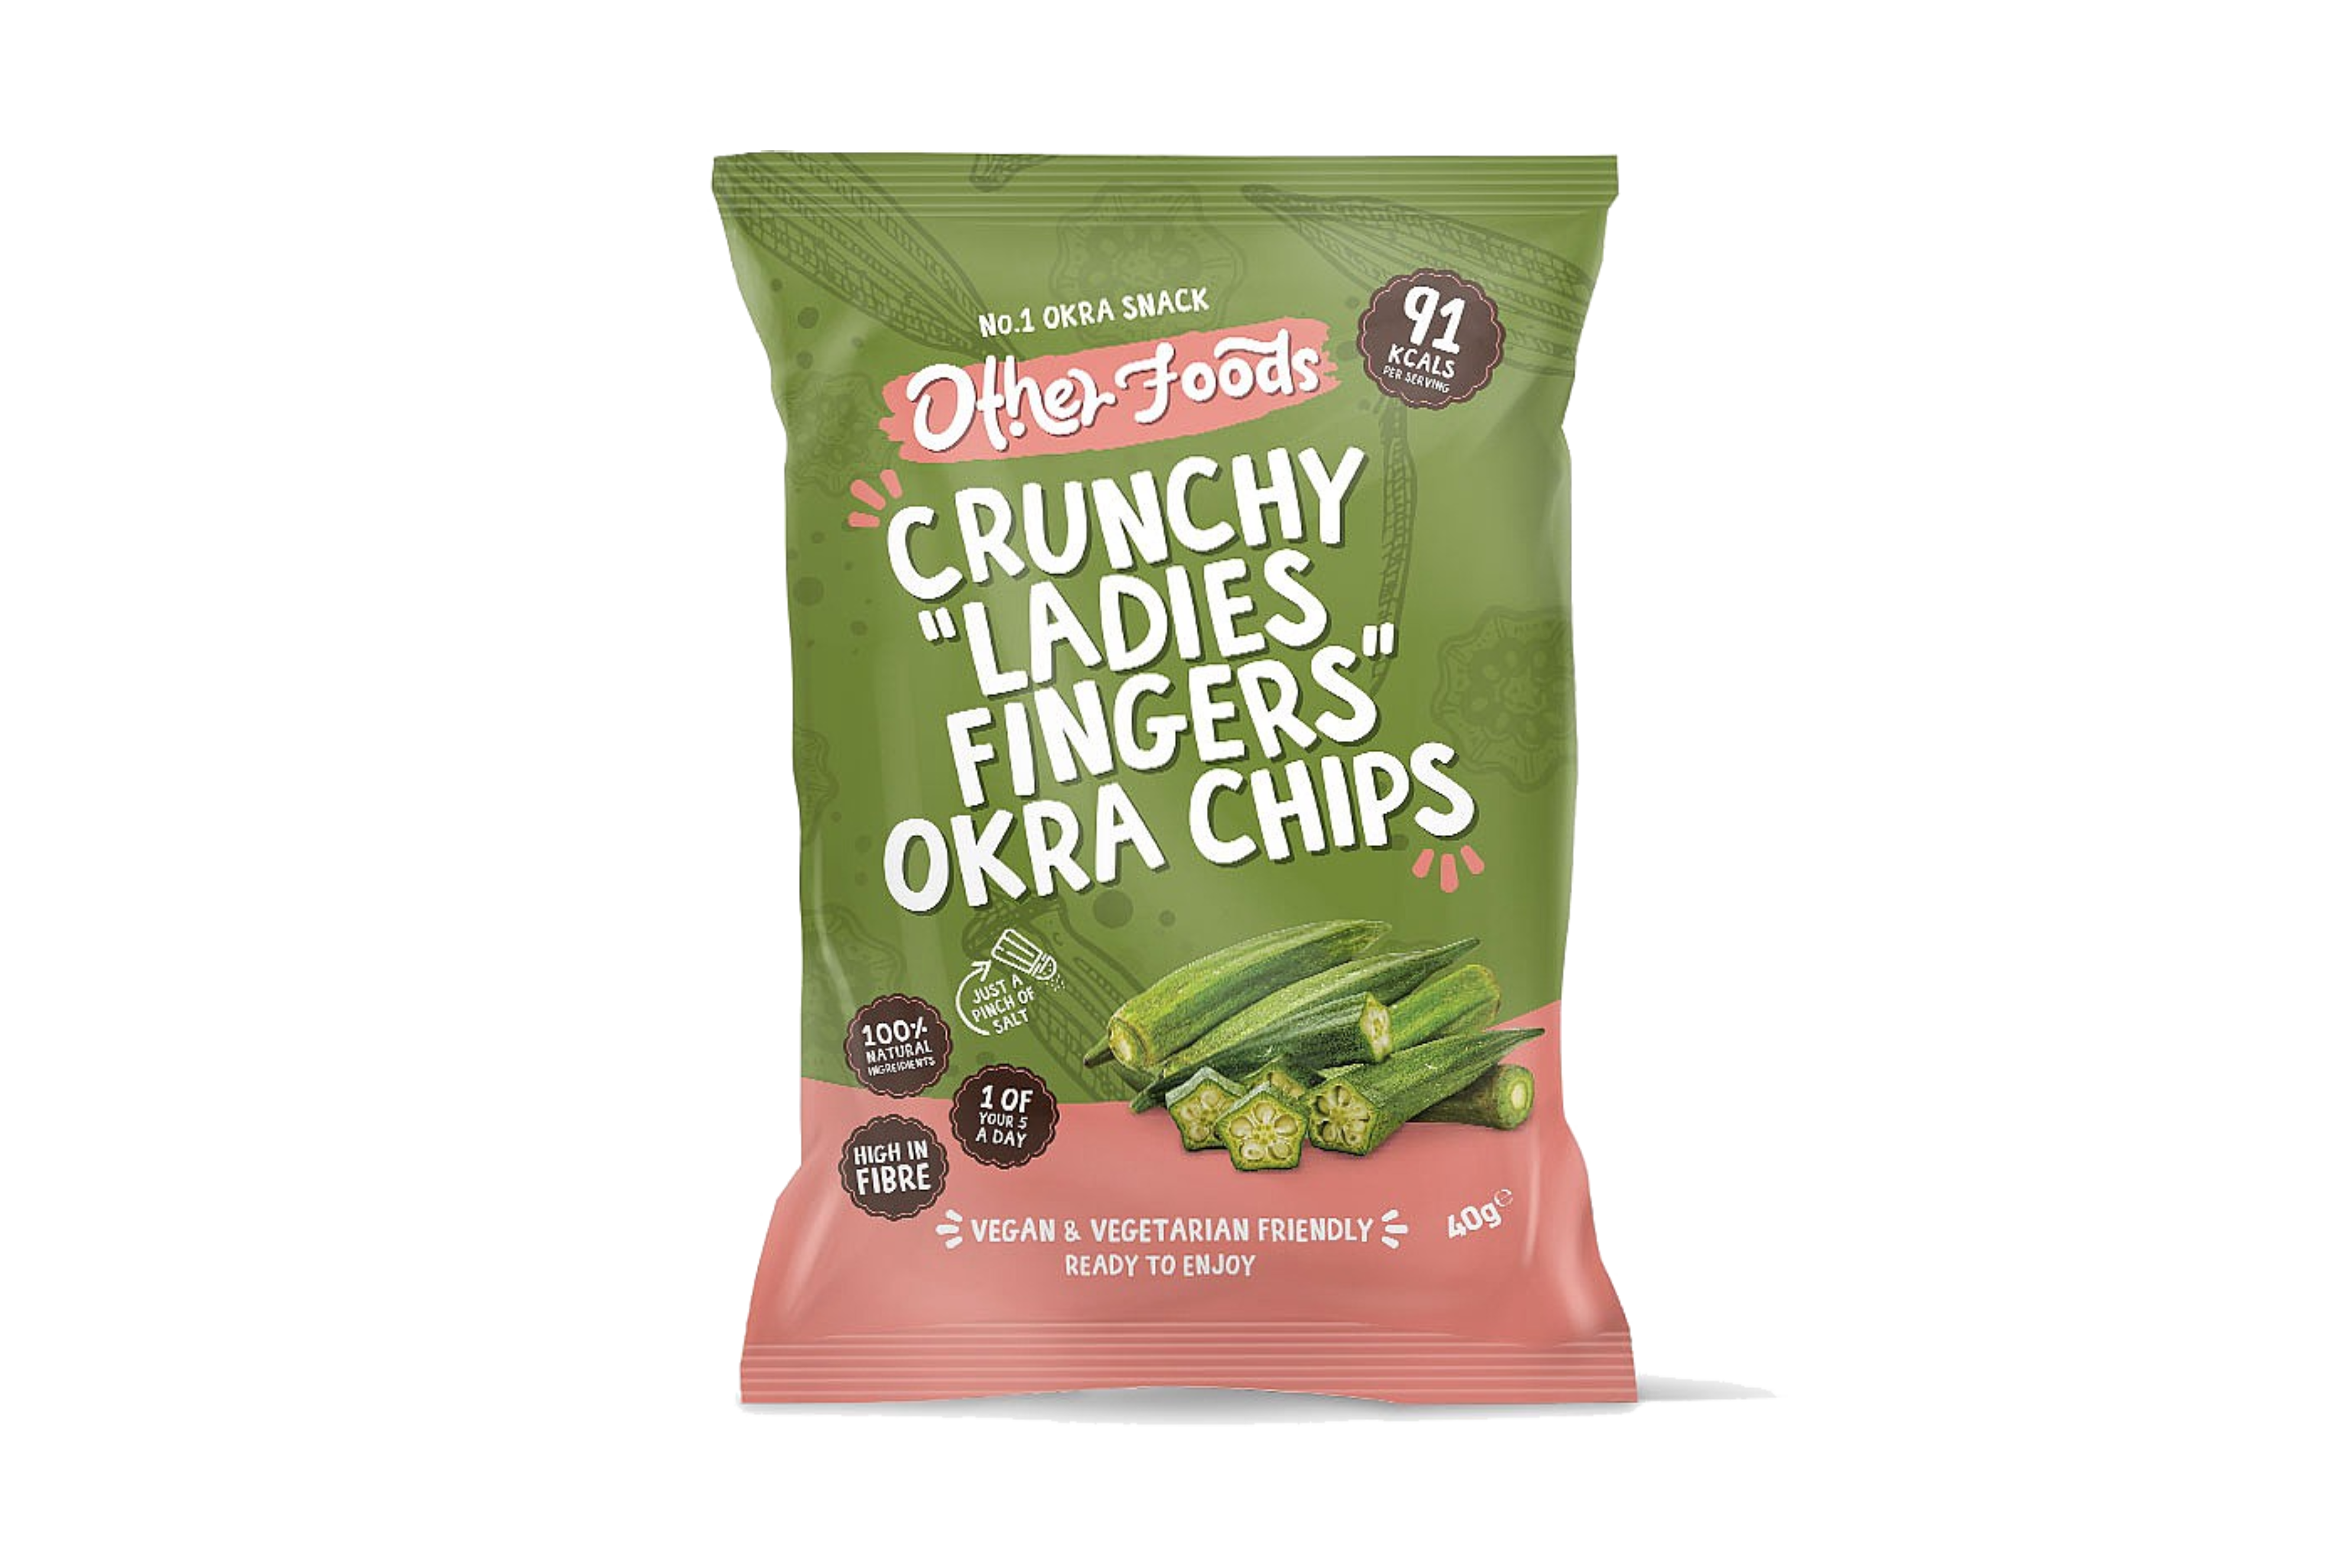 Other Foods Crunchy Ladies Fingers Okra Chips | Eatoo UK